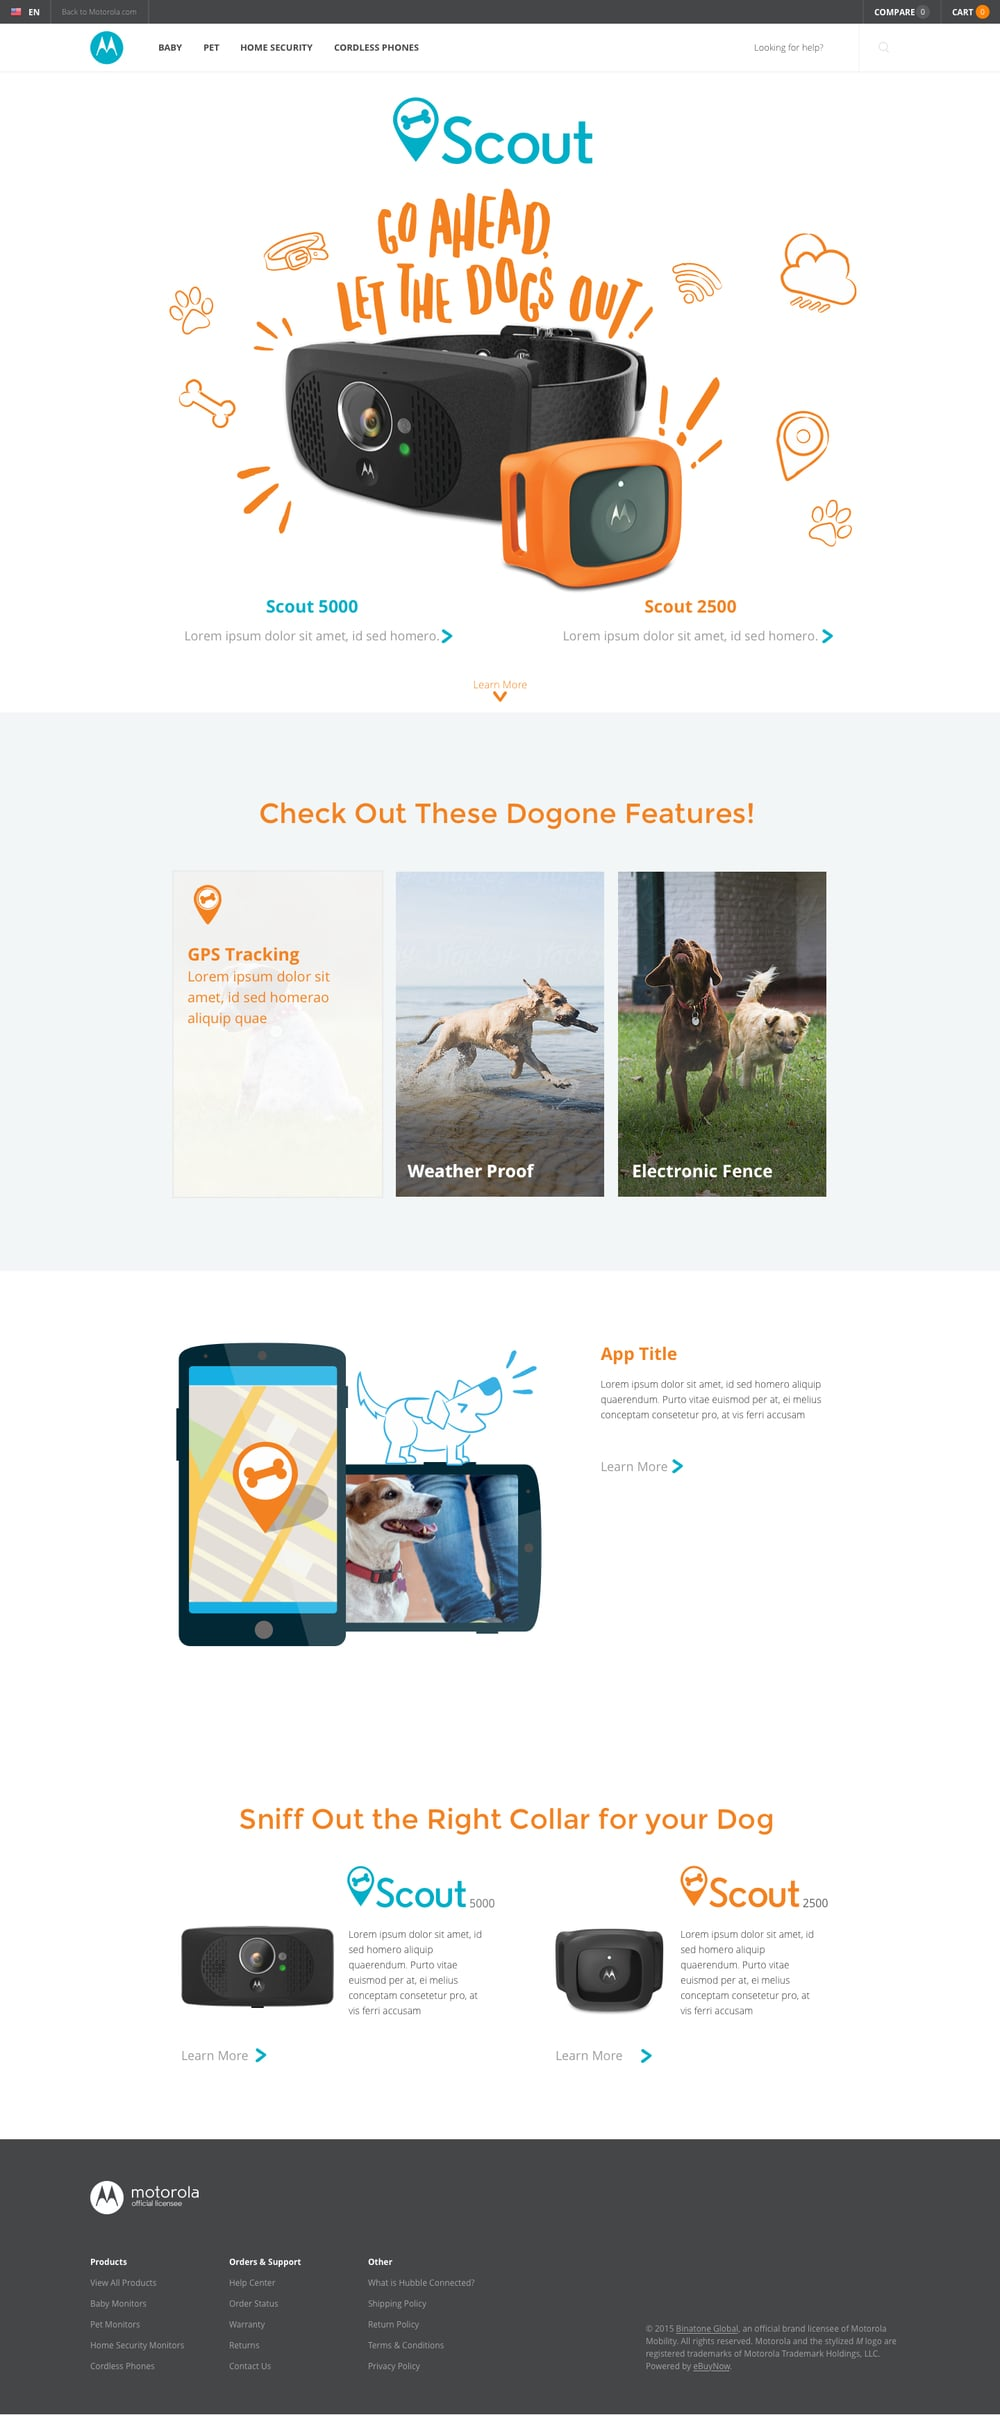 Scout 2500/5000 Landing Page